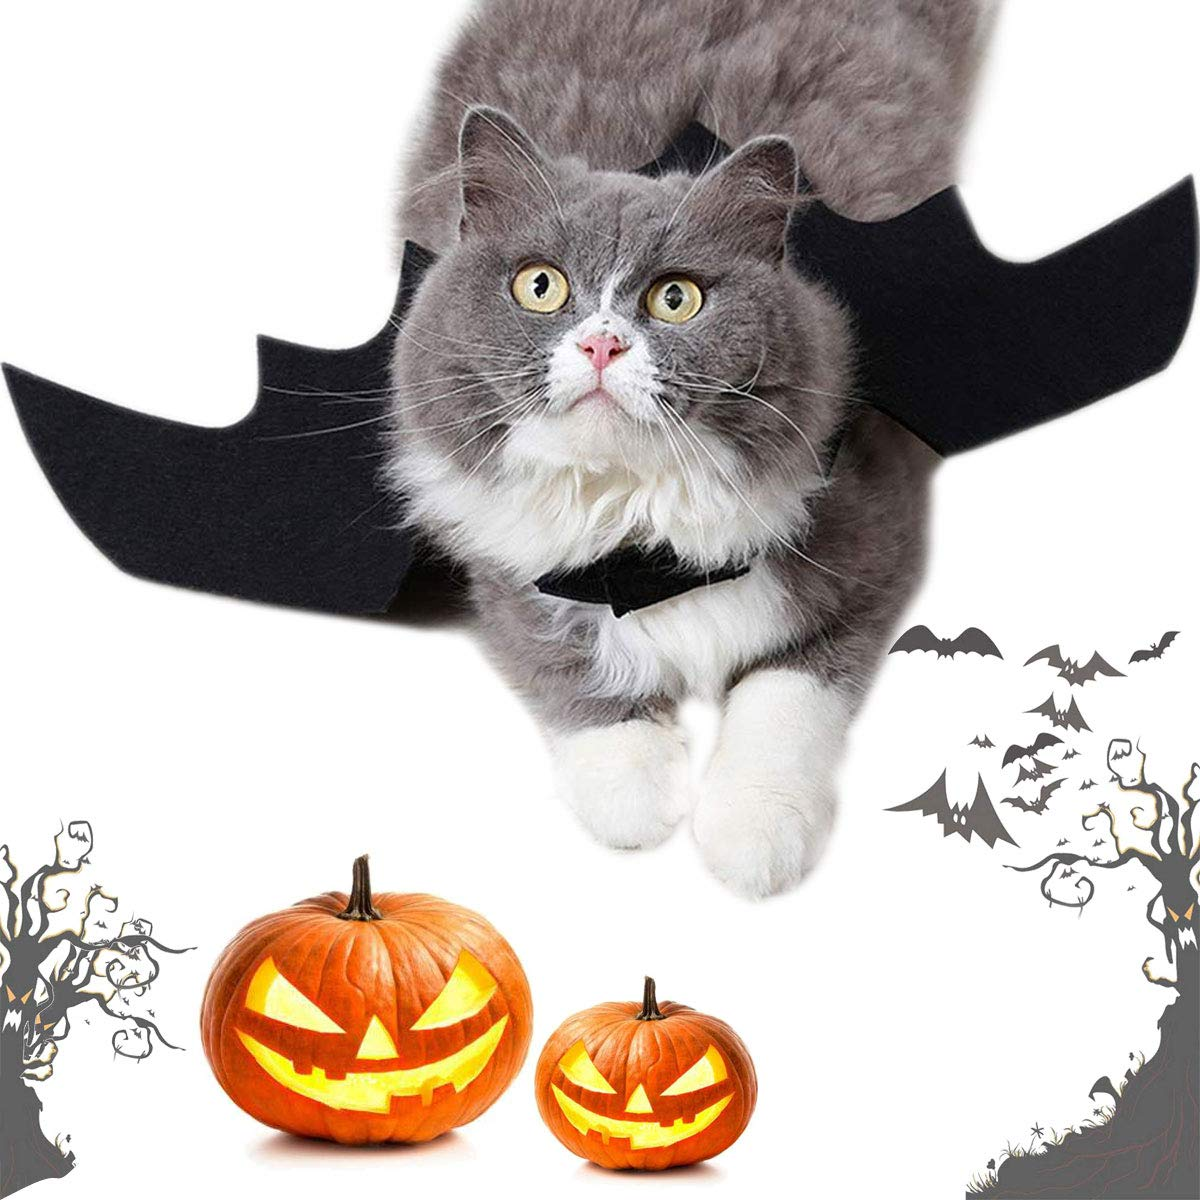 Cat Costume Christmas Pet Bat Wings Costumes Pet Apparel for Small Dogs and Cats Kitty Party Festival GRE1BEE